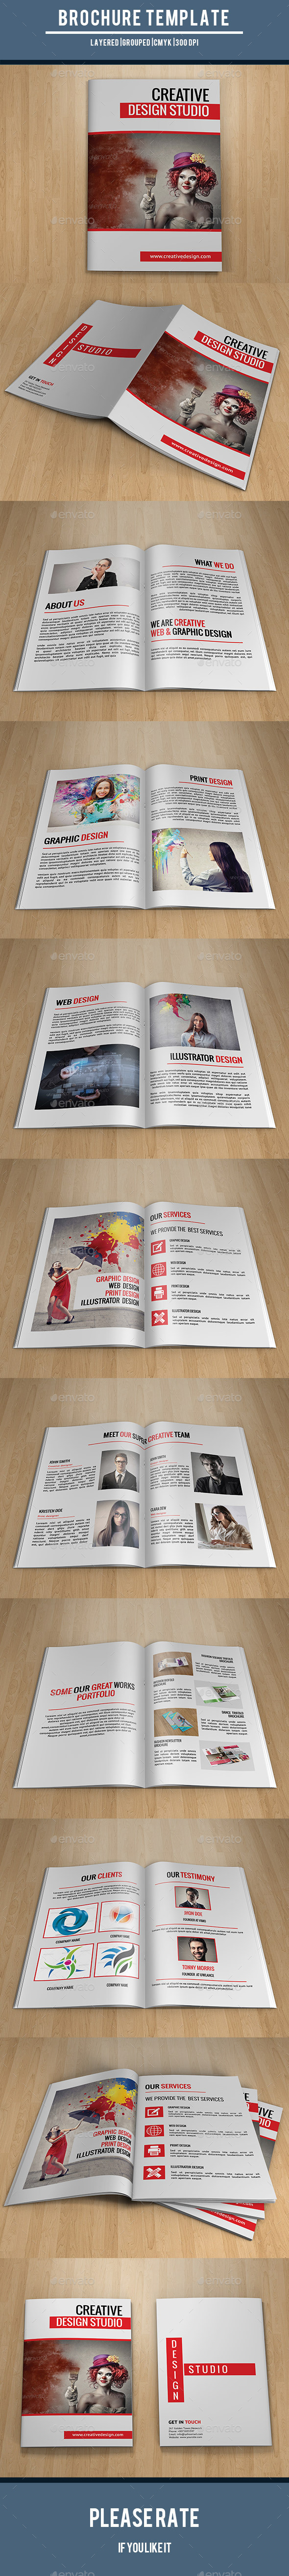 GraphicRiver Design Studio Brochure-V185 10160448